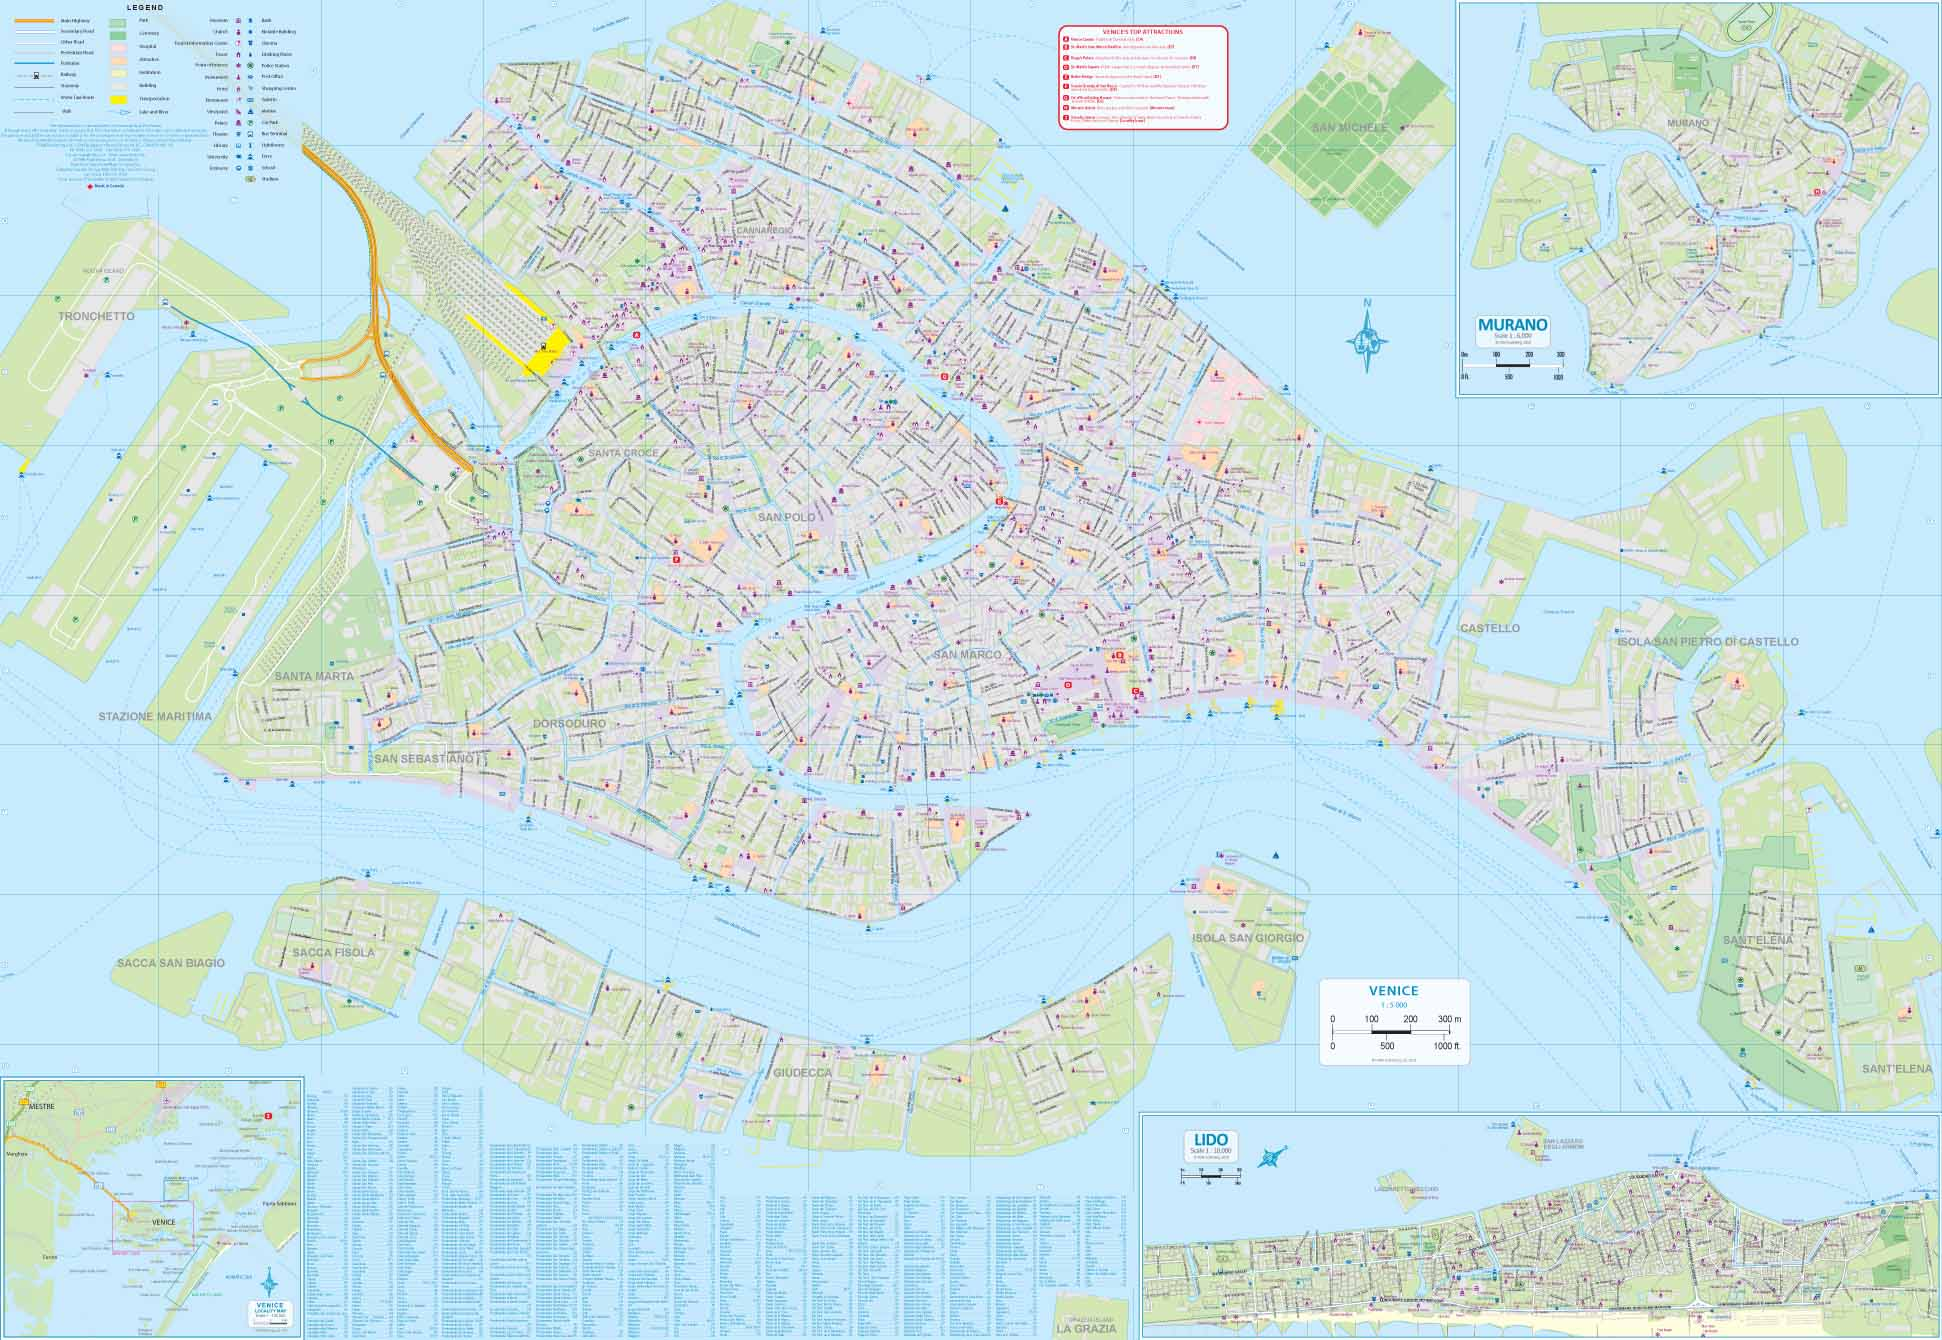 Topographic Map Italy.Maps For Travel City Maps Road Maps Guides Globes Topographic Maps